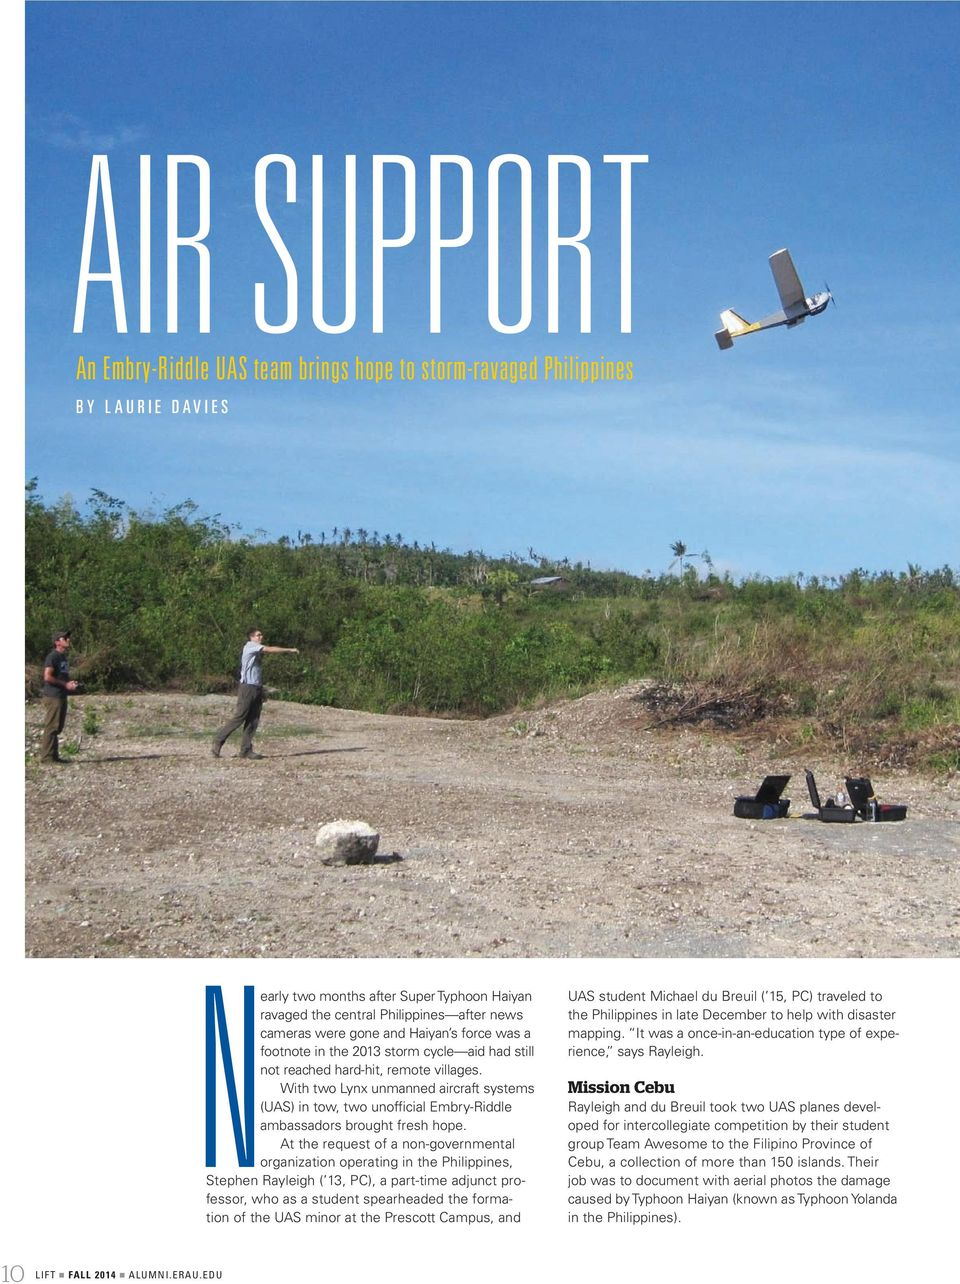 With two Lynx unmanned aircraft systems (UAS) in tow, two unofficial Embry-Riddle ambassadors brought fresh hope.